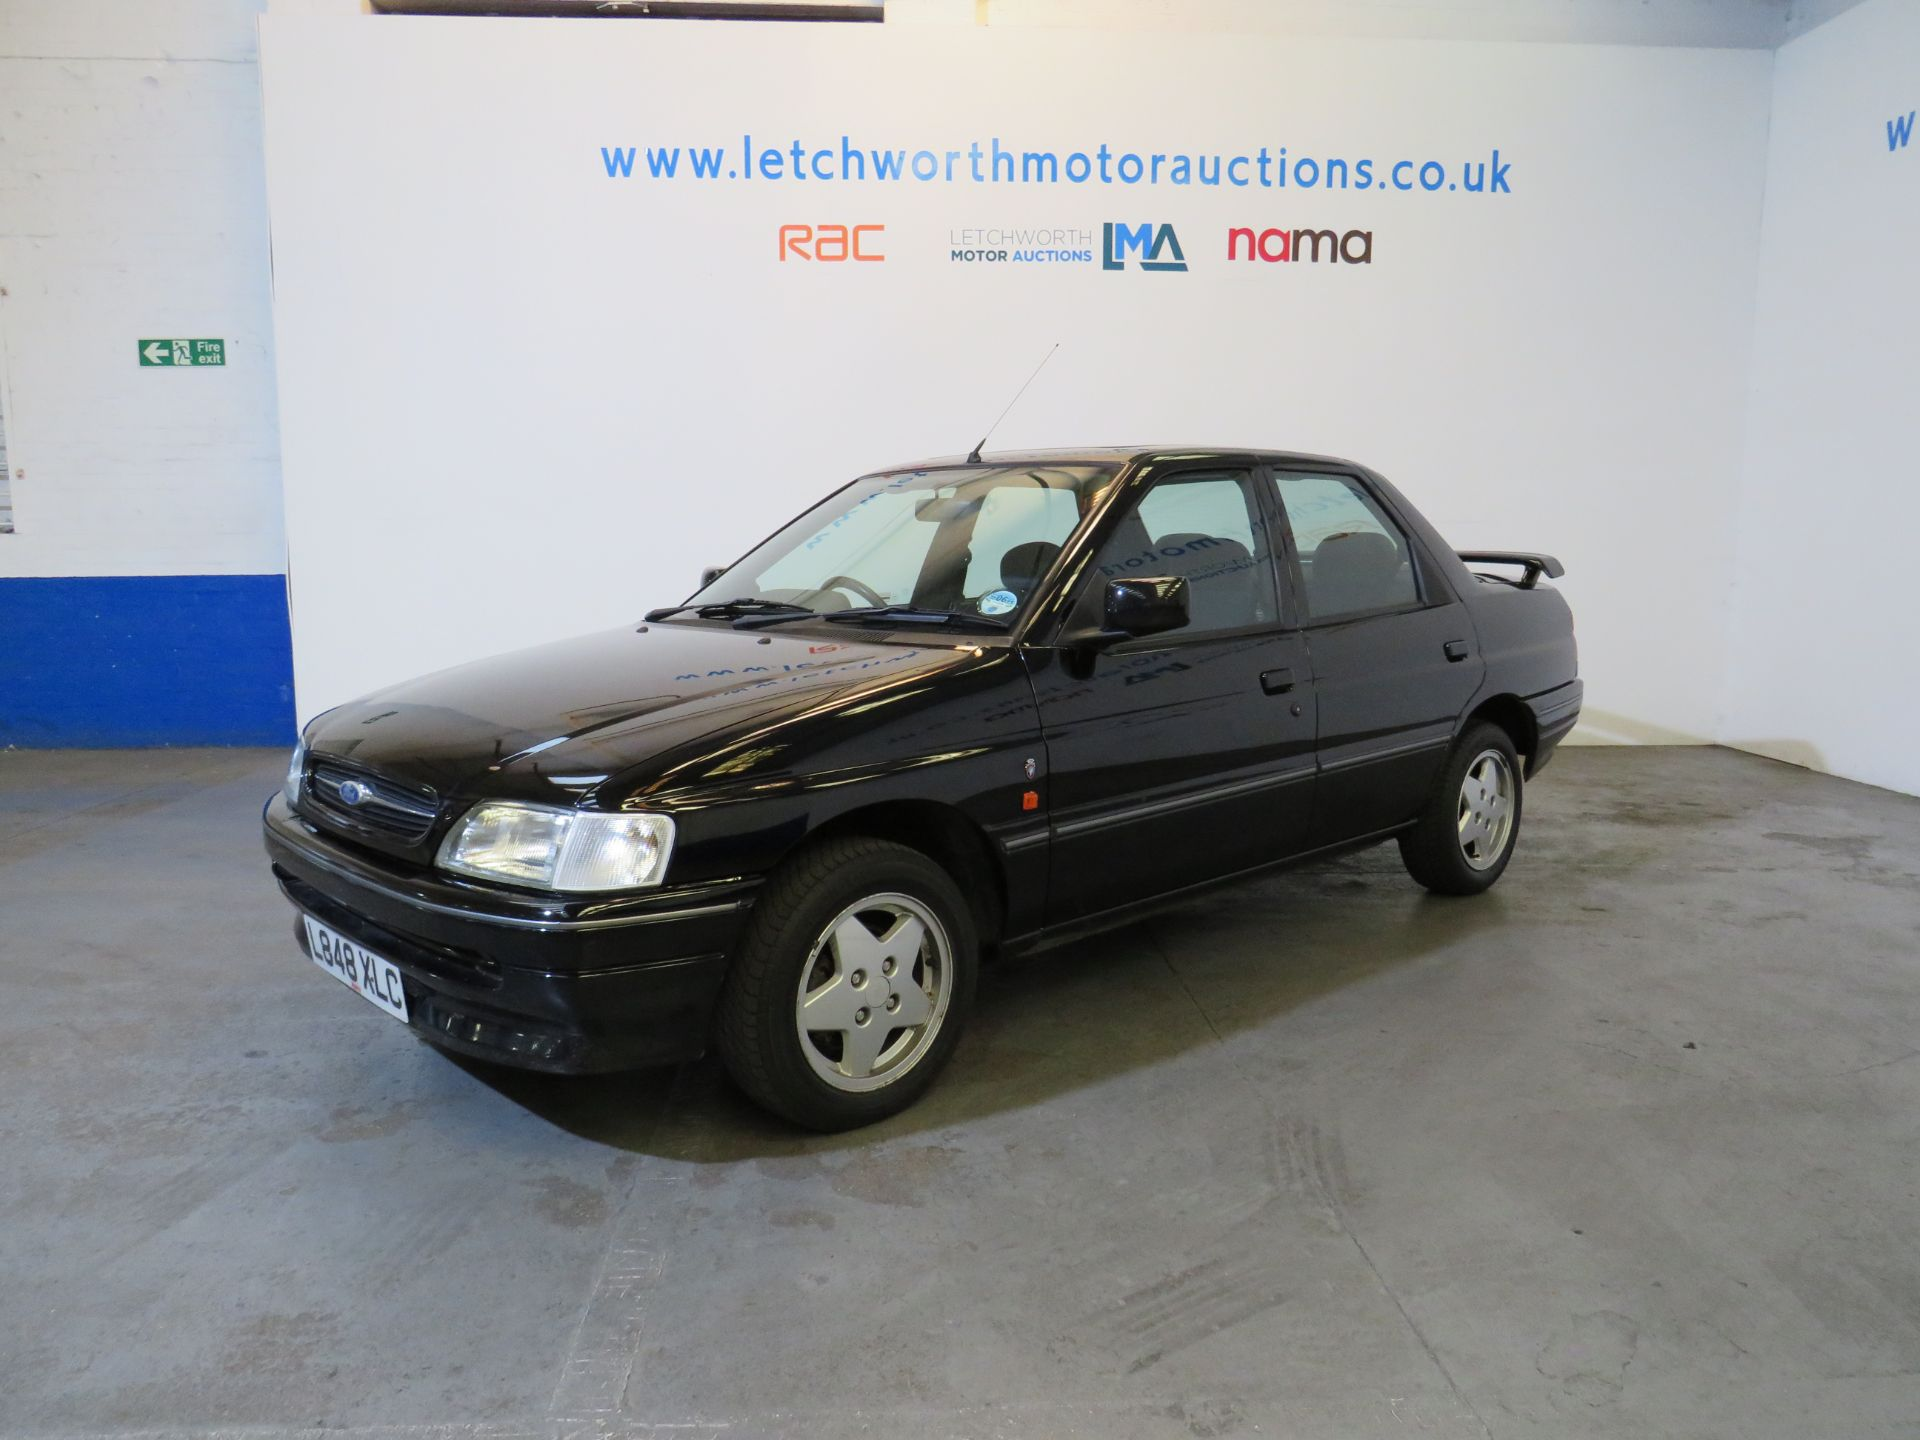 Lot 22 - 1994 Ford Orion Ghia SI - 1796cc